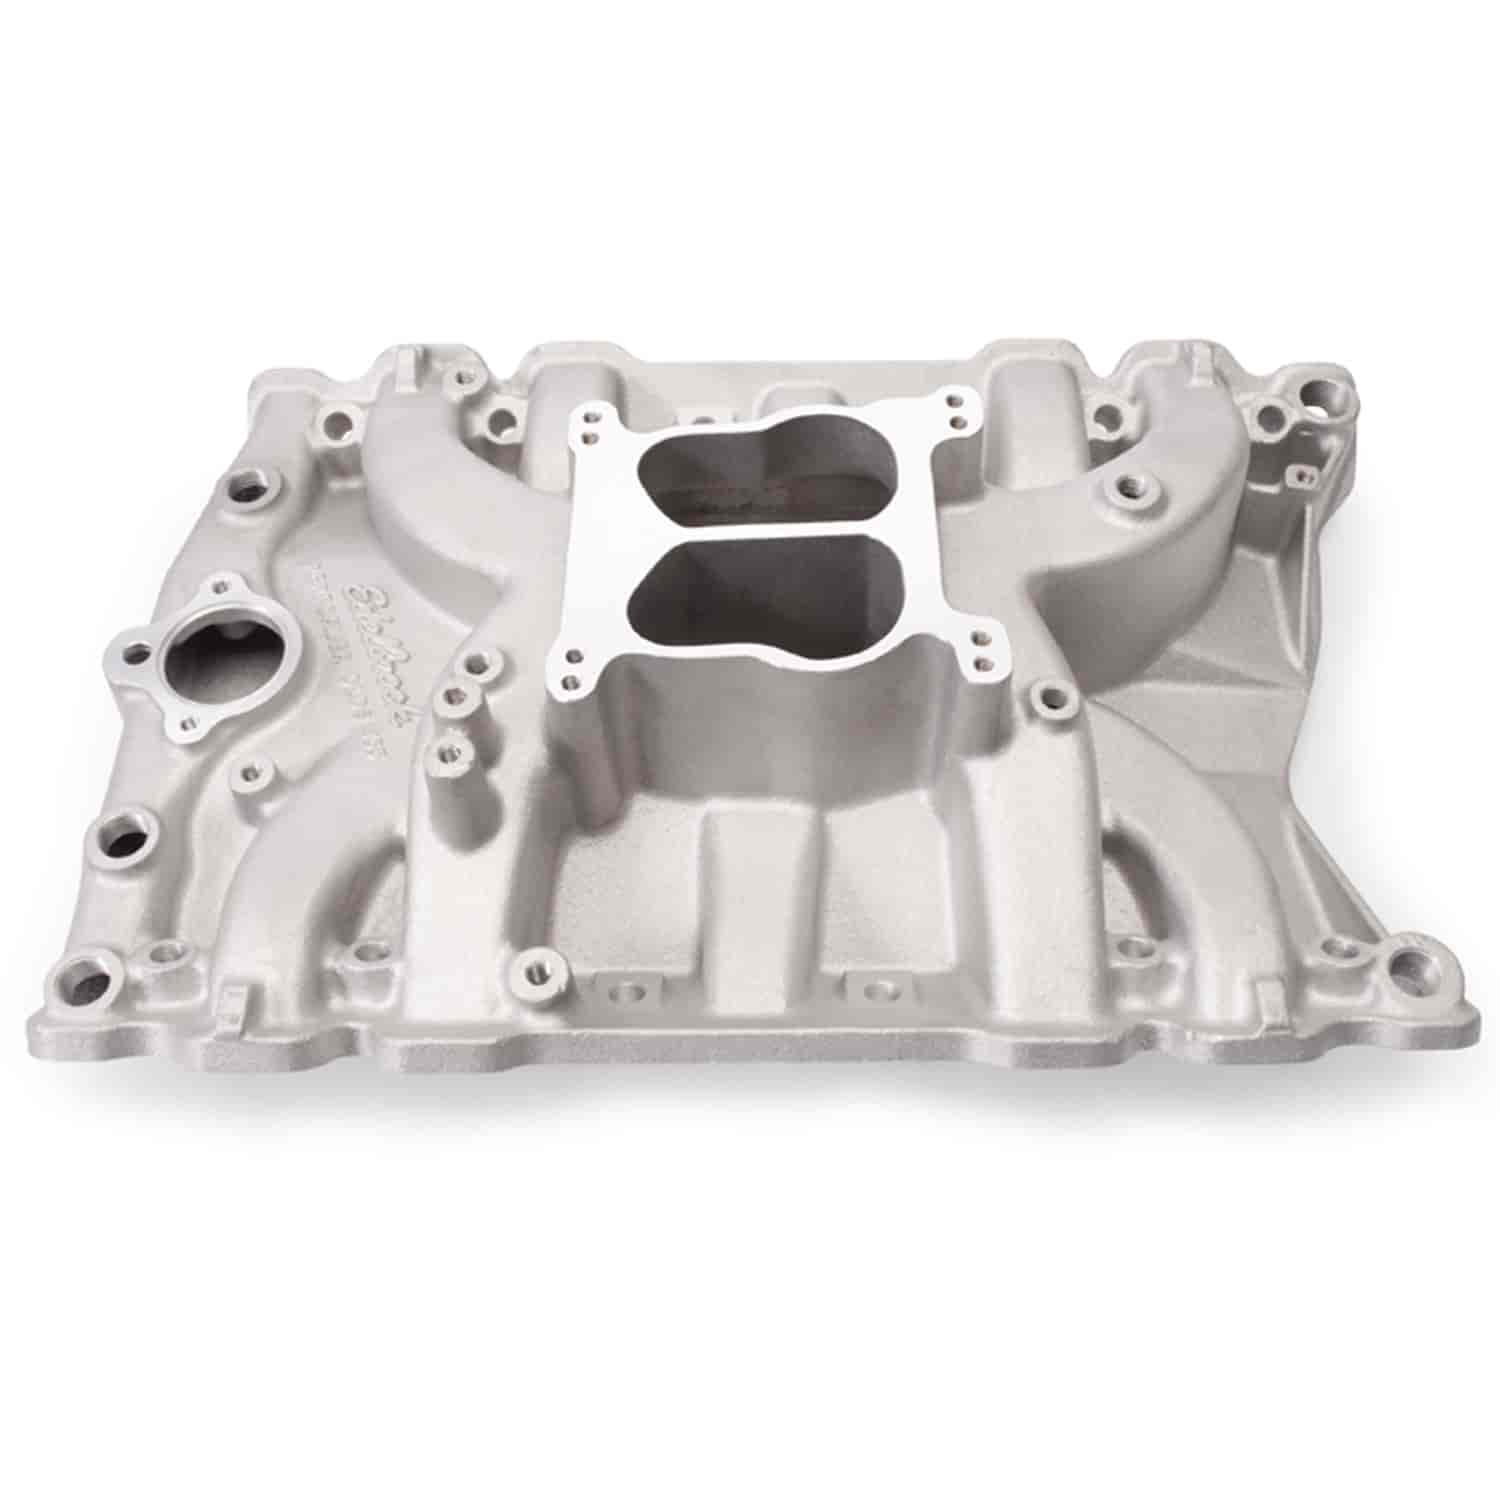 Edelbrock 2151 - Edelbrock Performer Manifolds for Olds